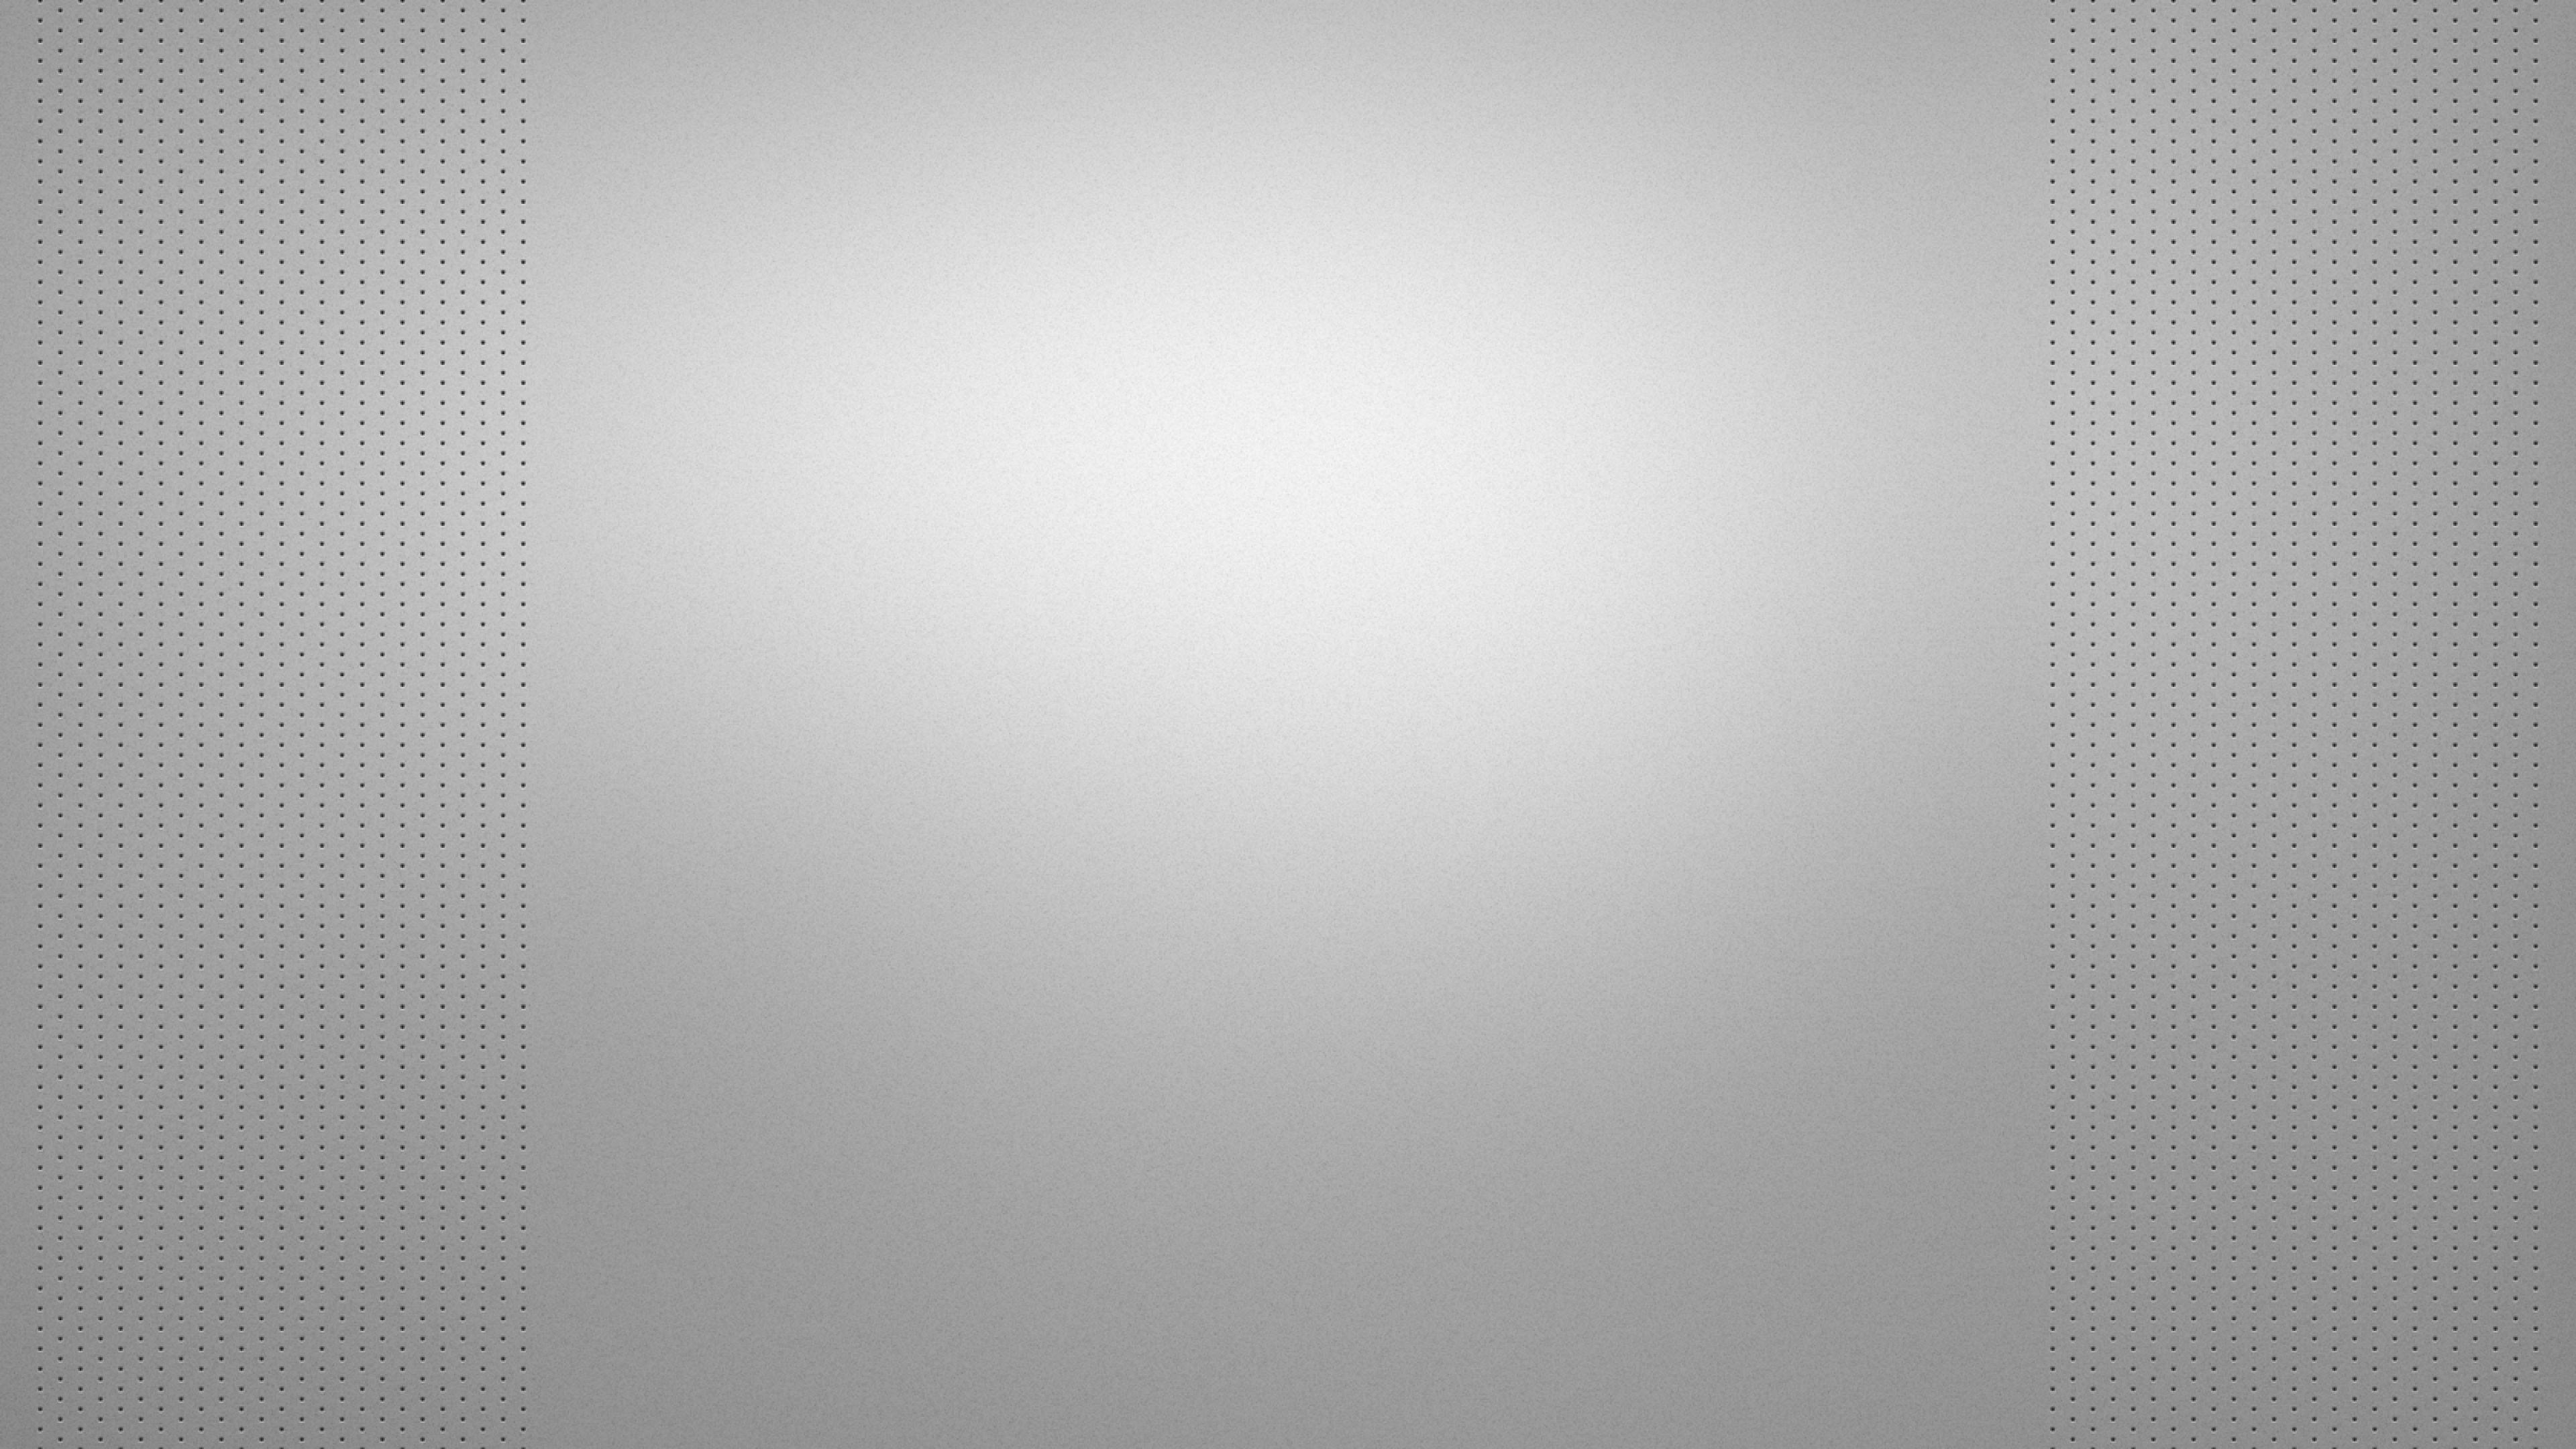 70+ White Backgrounds, Wallpapers, Images, Pictures